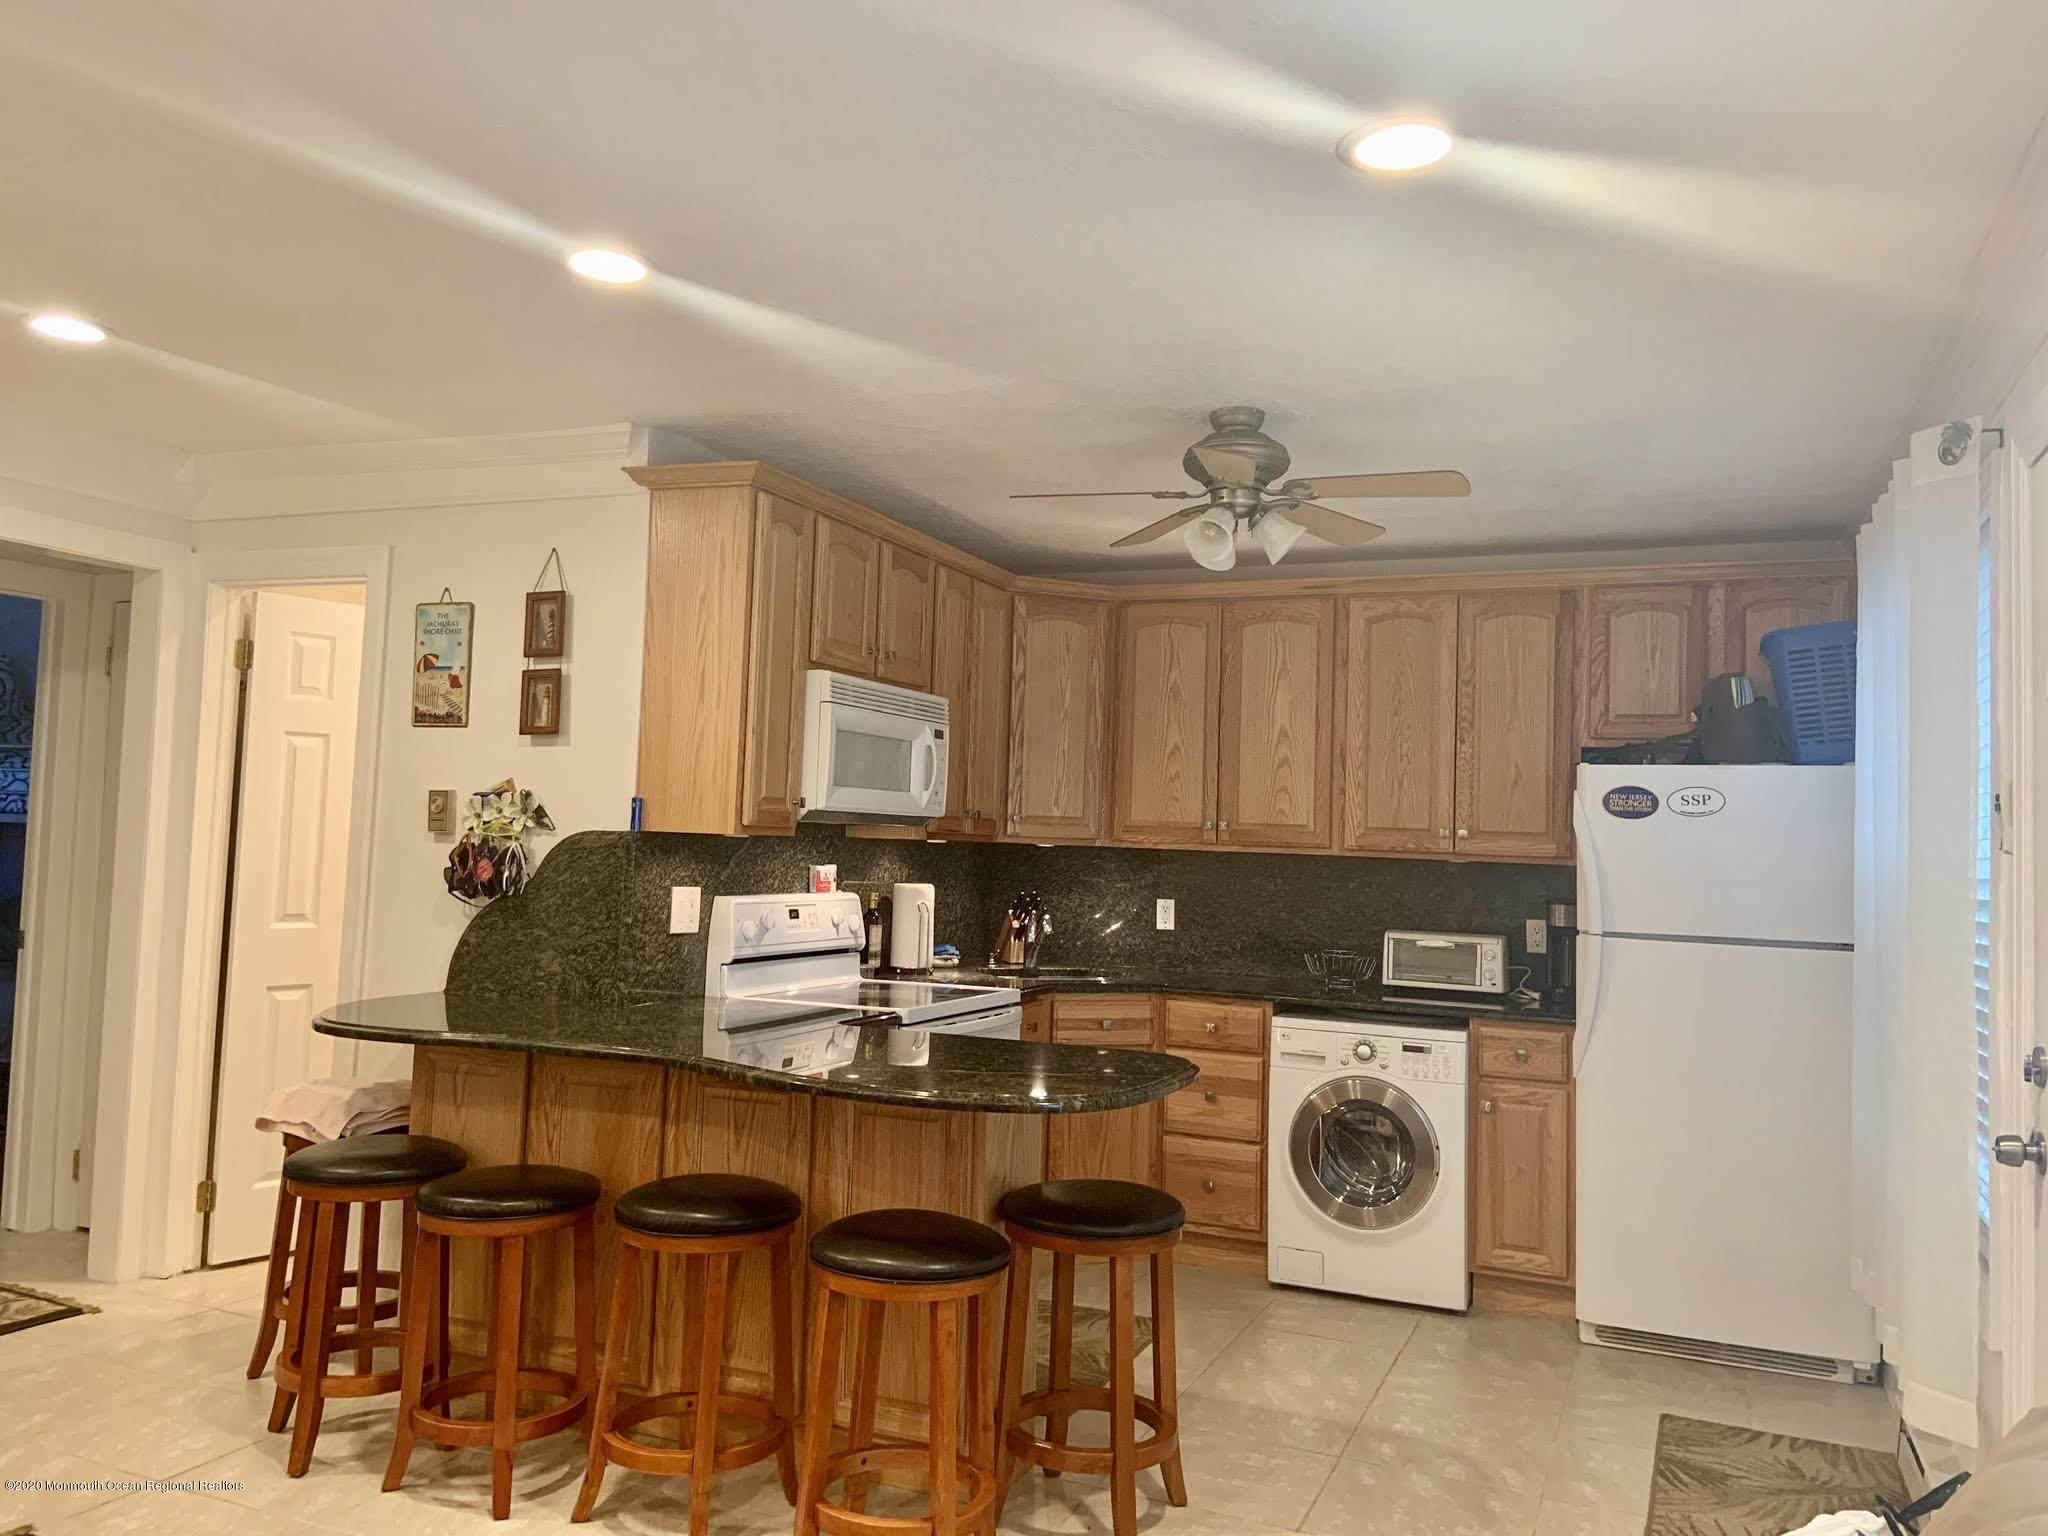 Property for Sale at 28 K Street Seaside Park, New Jersey 08752 United States